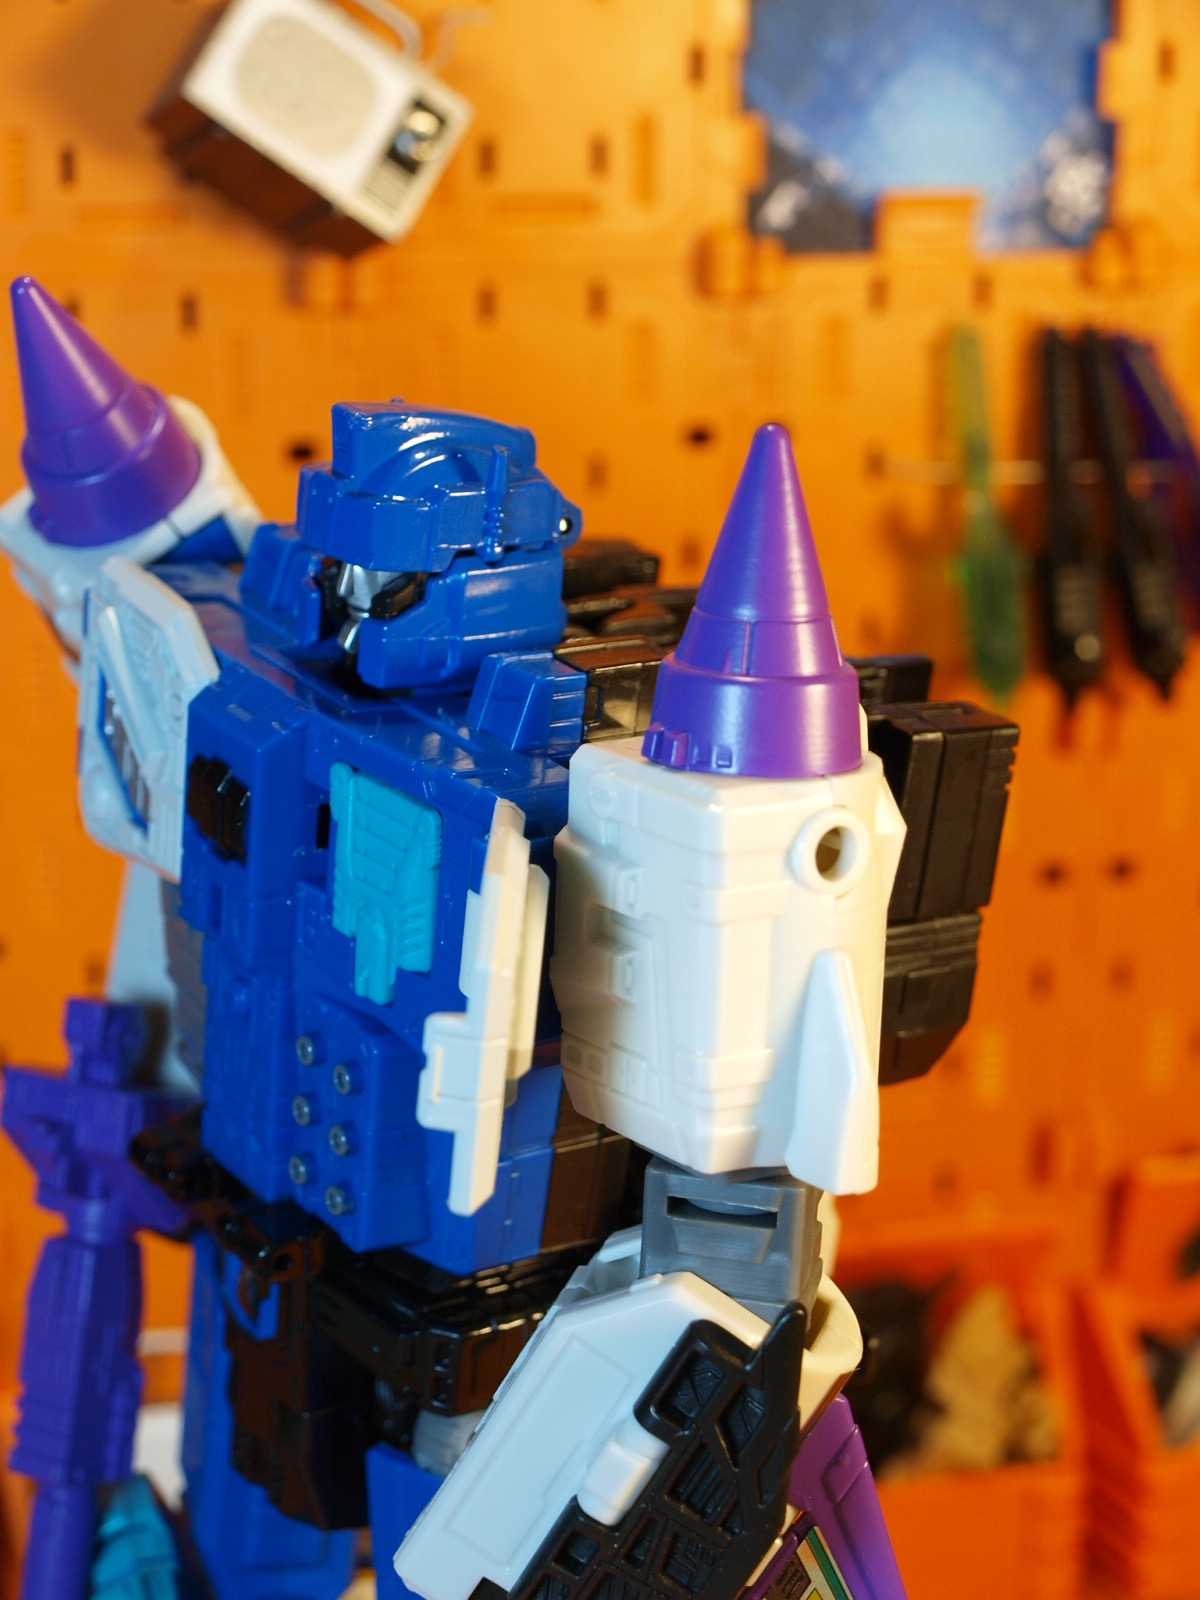 Overlord with Prime Master plug - close